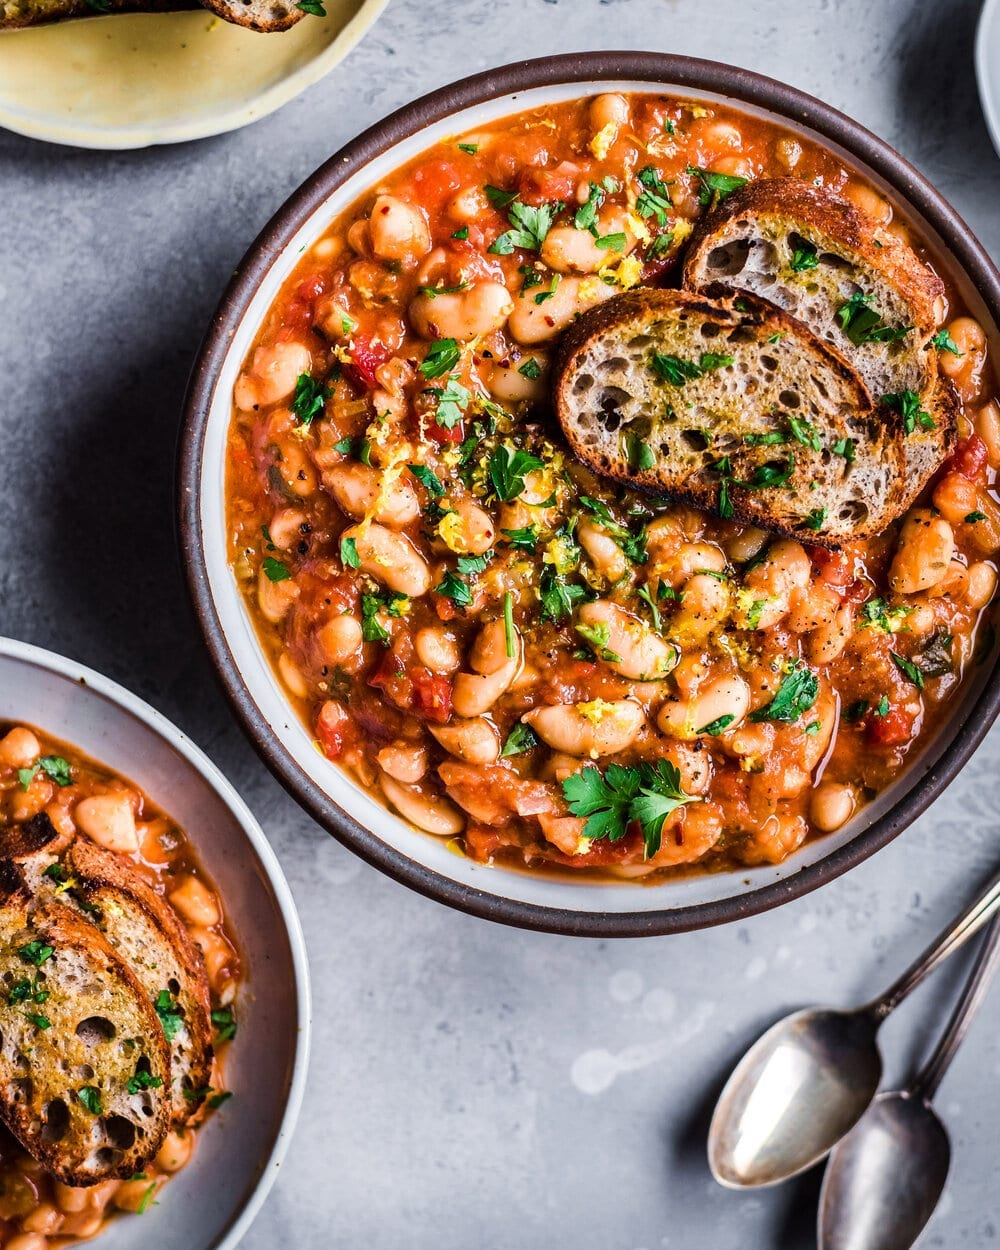 tomato white bean stew with parsley and bread